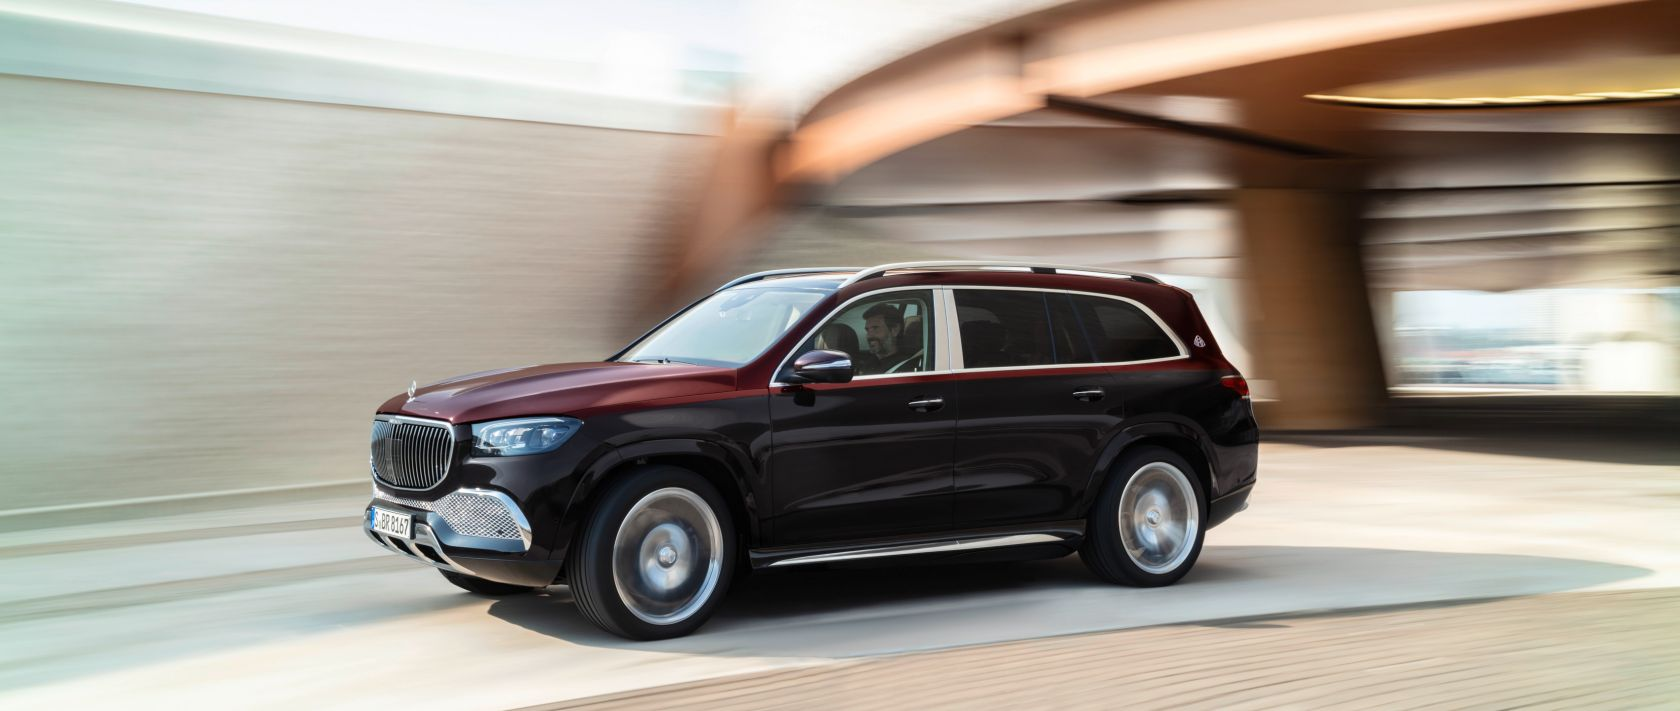 Mercedes Benz Has Unveiled Maybach Gls Luxury Suv